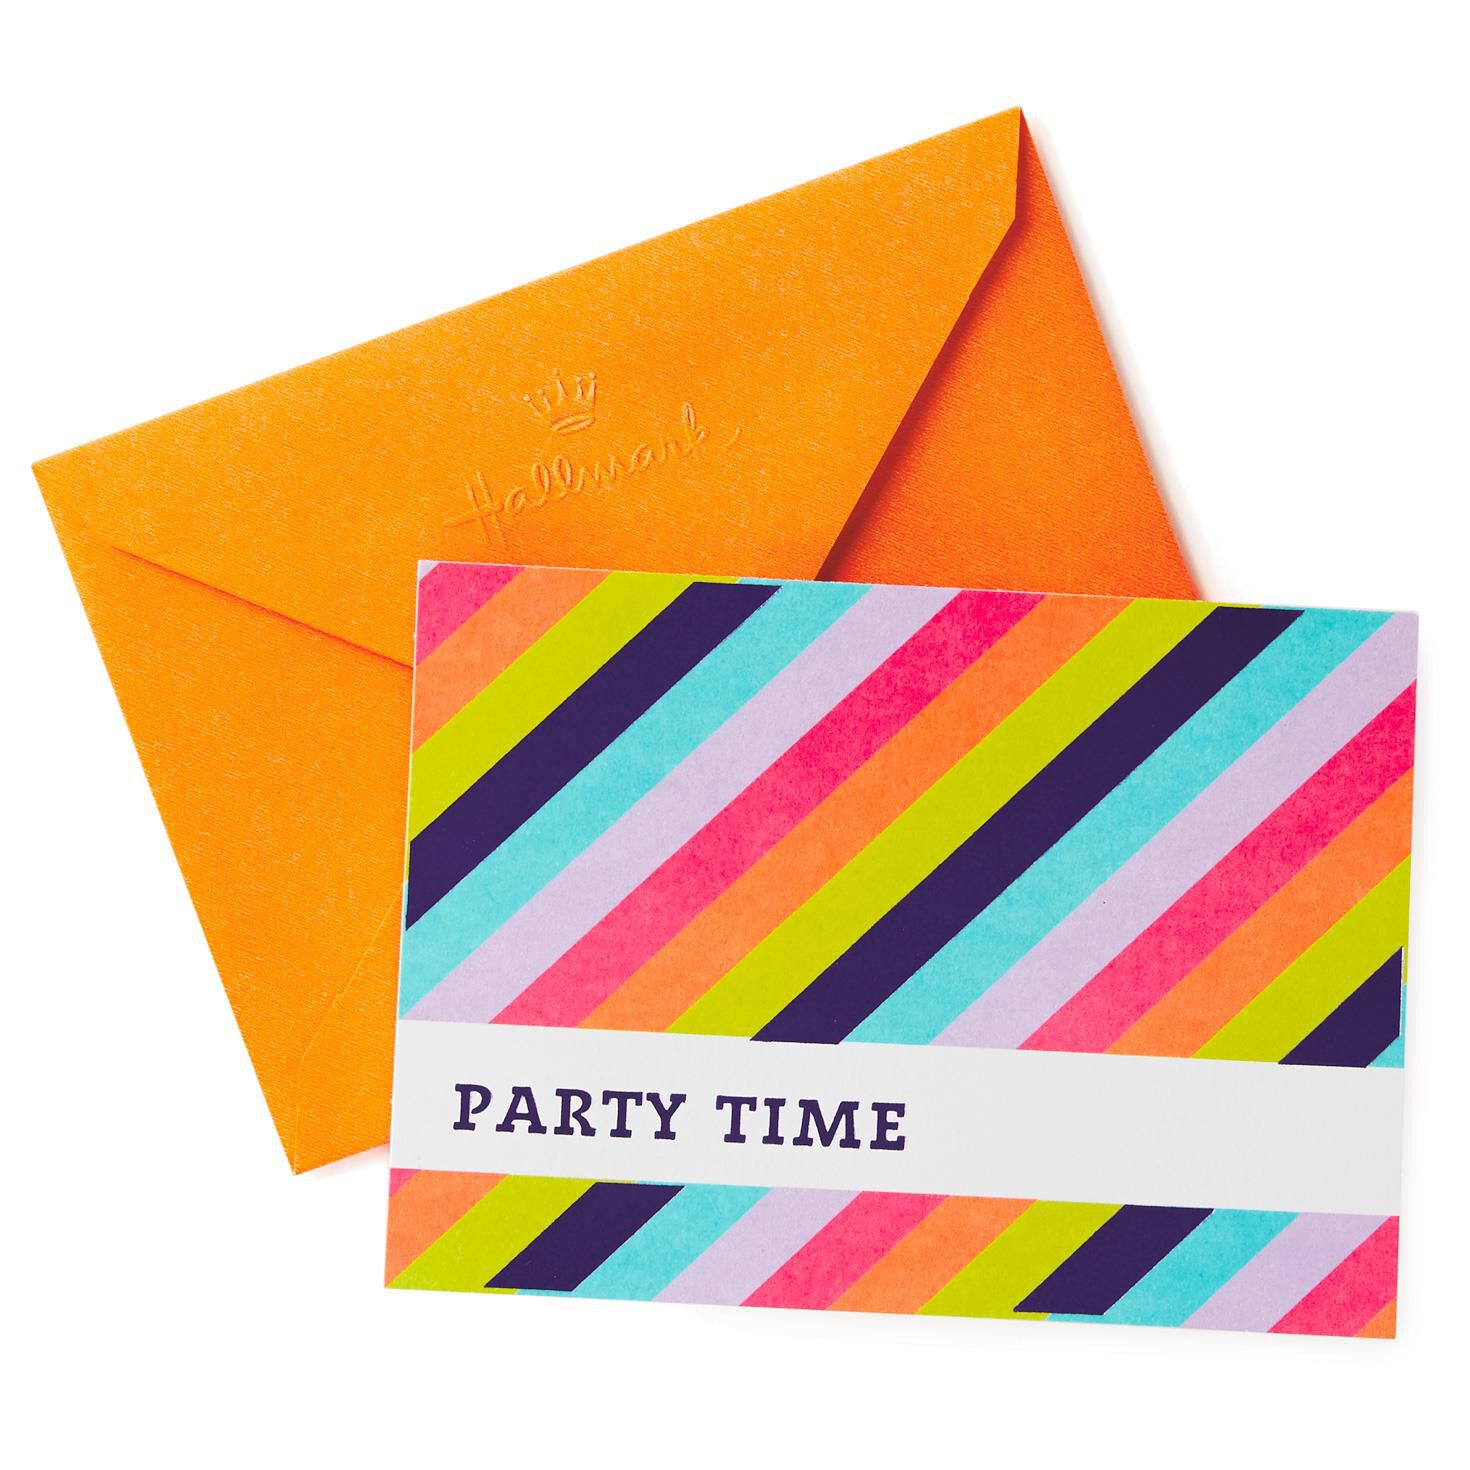 Striped Party Time Invitations, Pack of 10 - Invitations - Hallmark